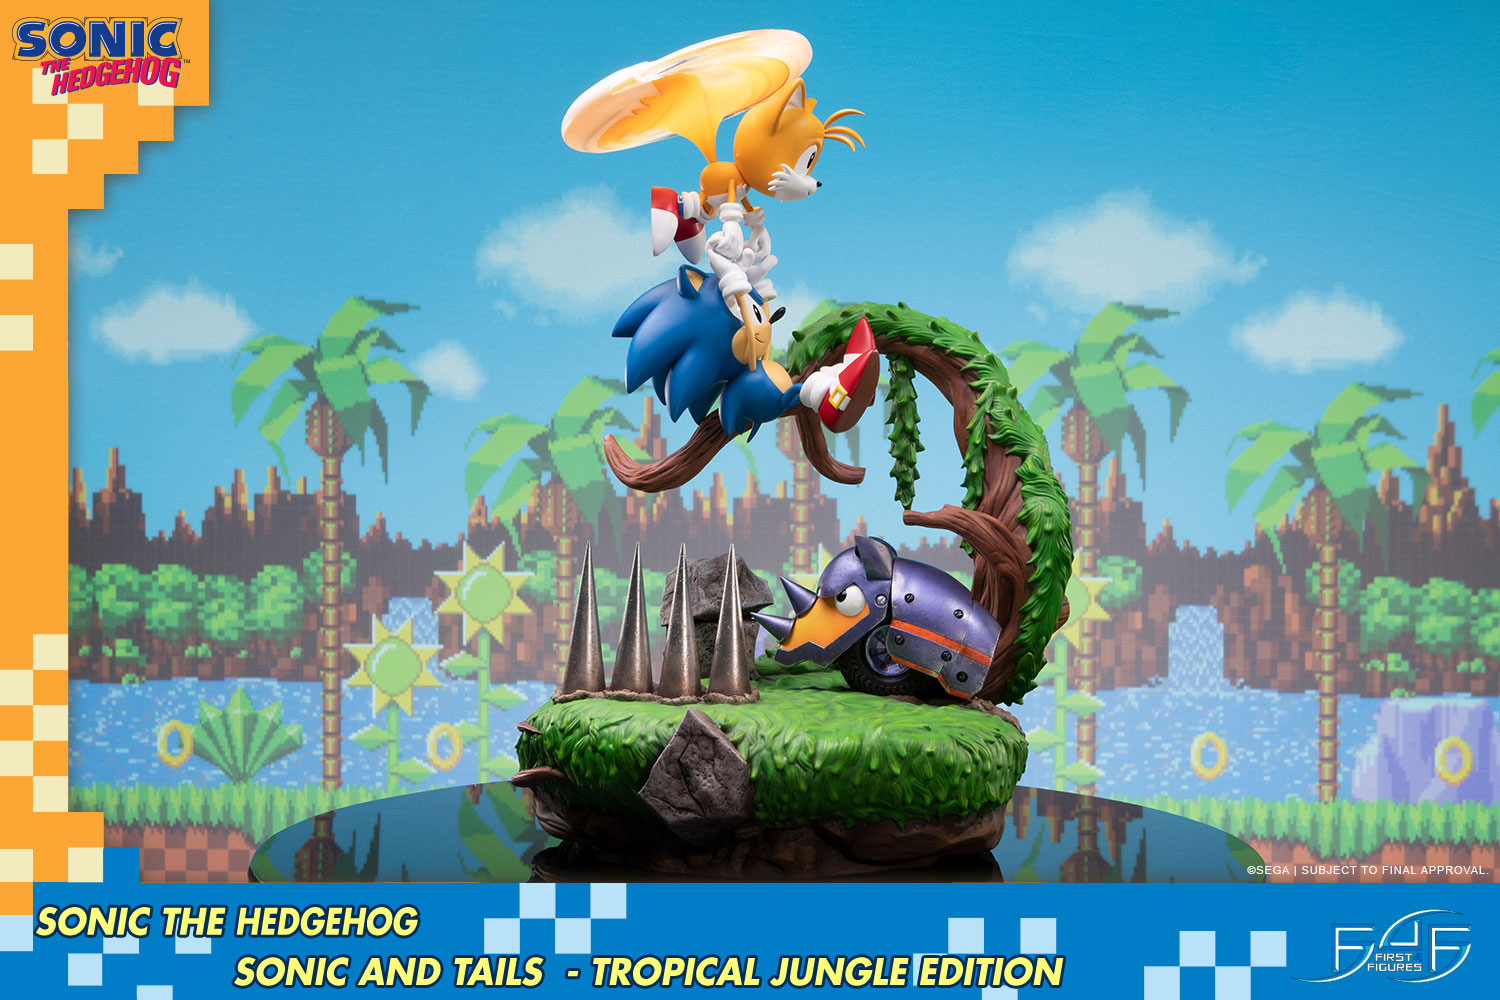 Sonic and Tails (Tropical Jungle Edition)